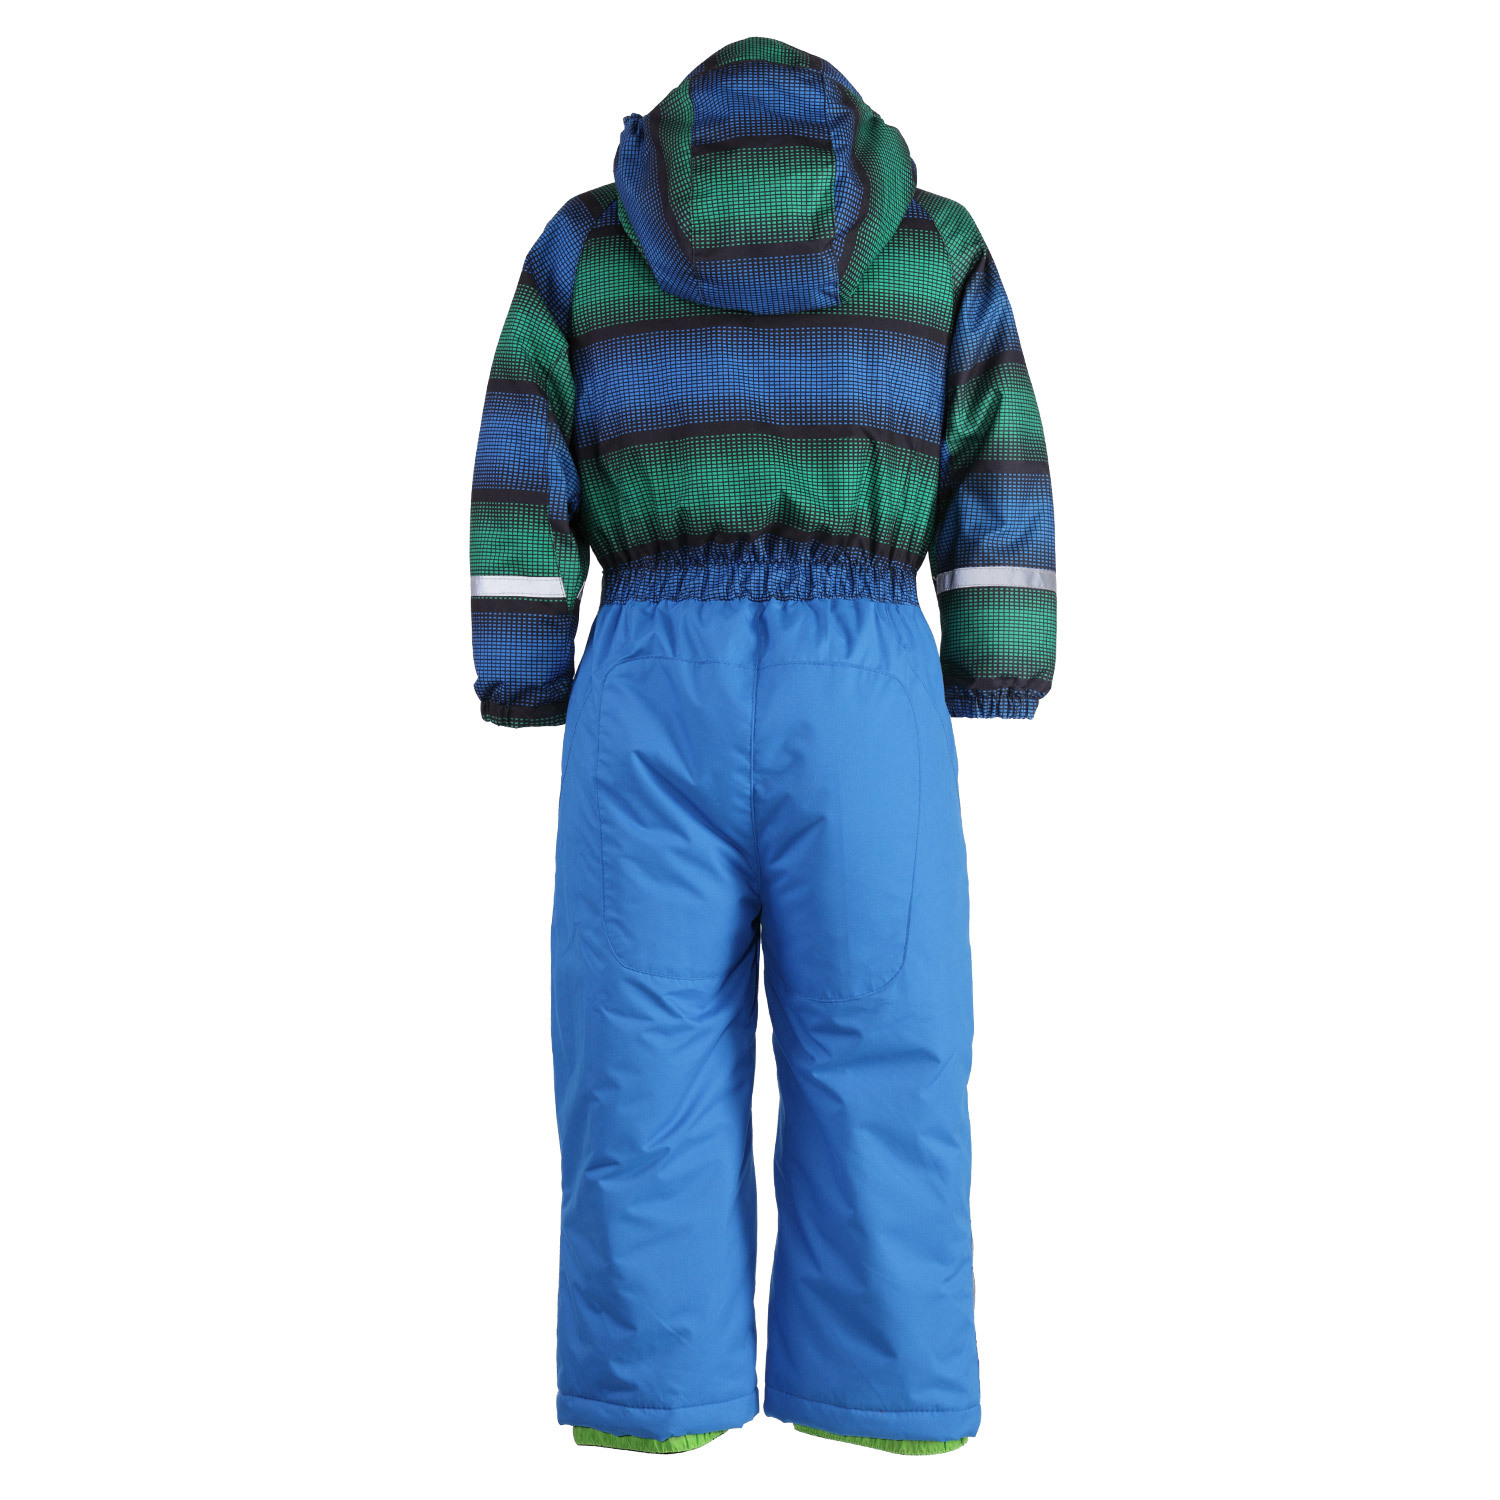 schneeanzug baby gr e 80 blau gr n skianzug skioverall. Black Bedroom Furniture Sets. Home Design Ideas